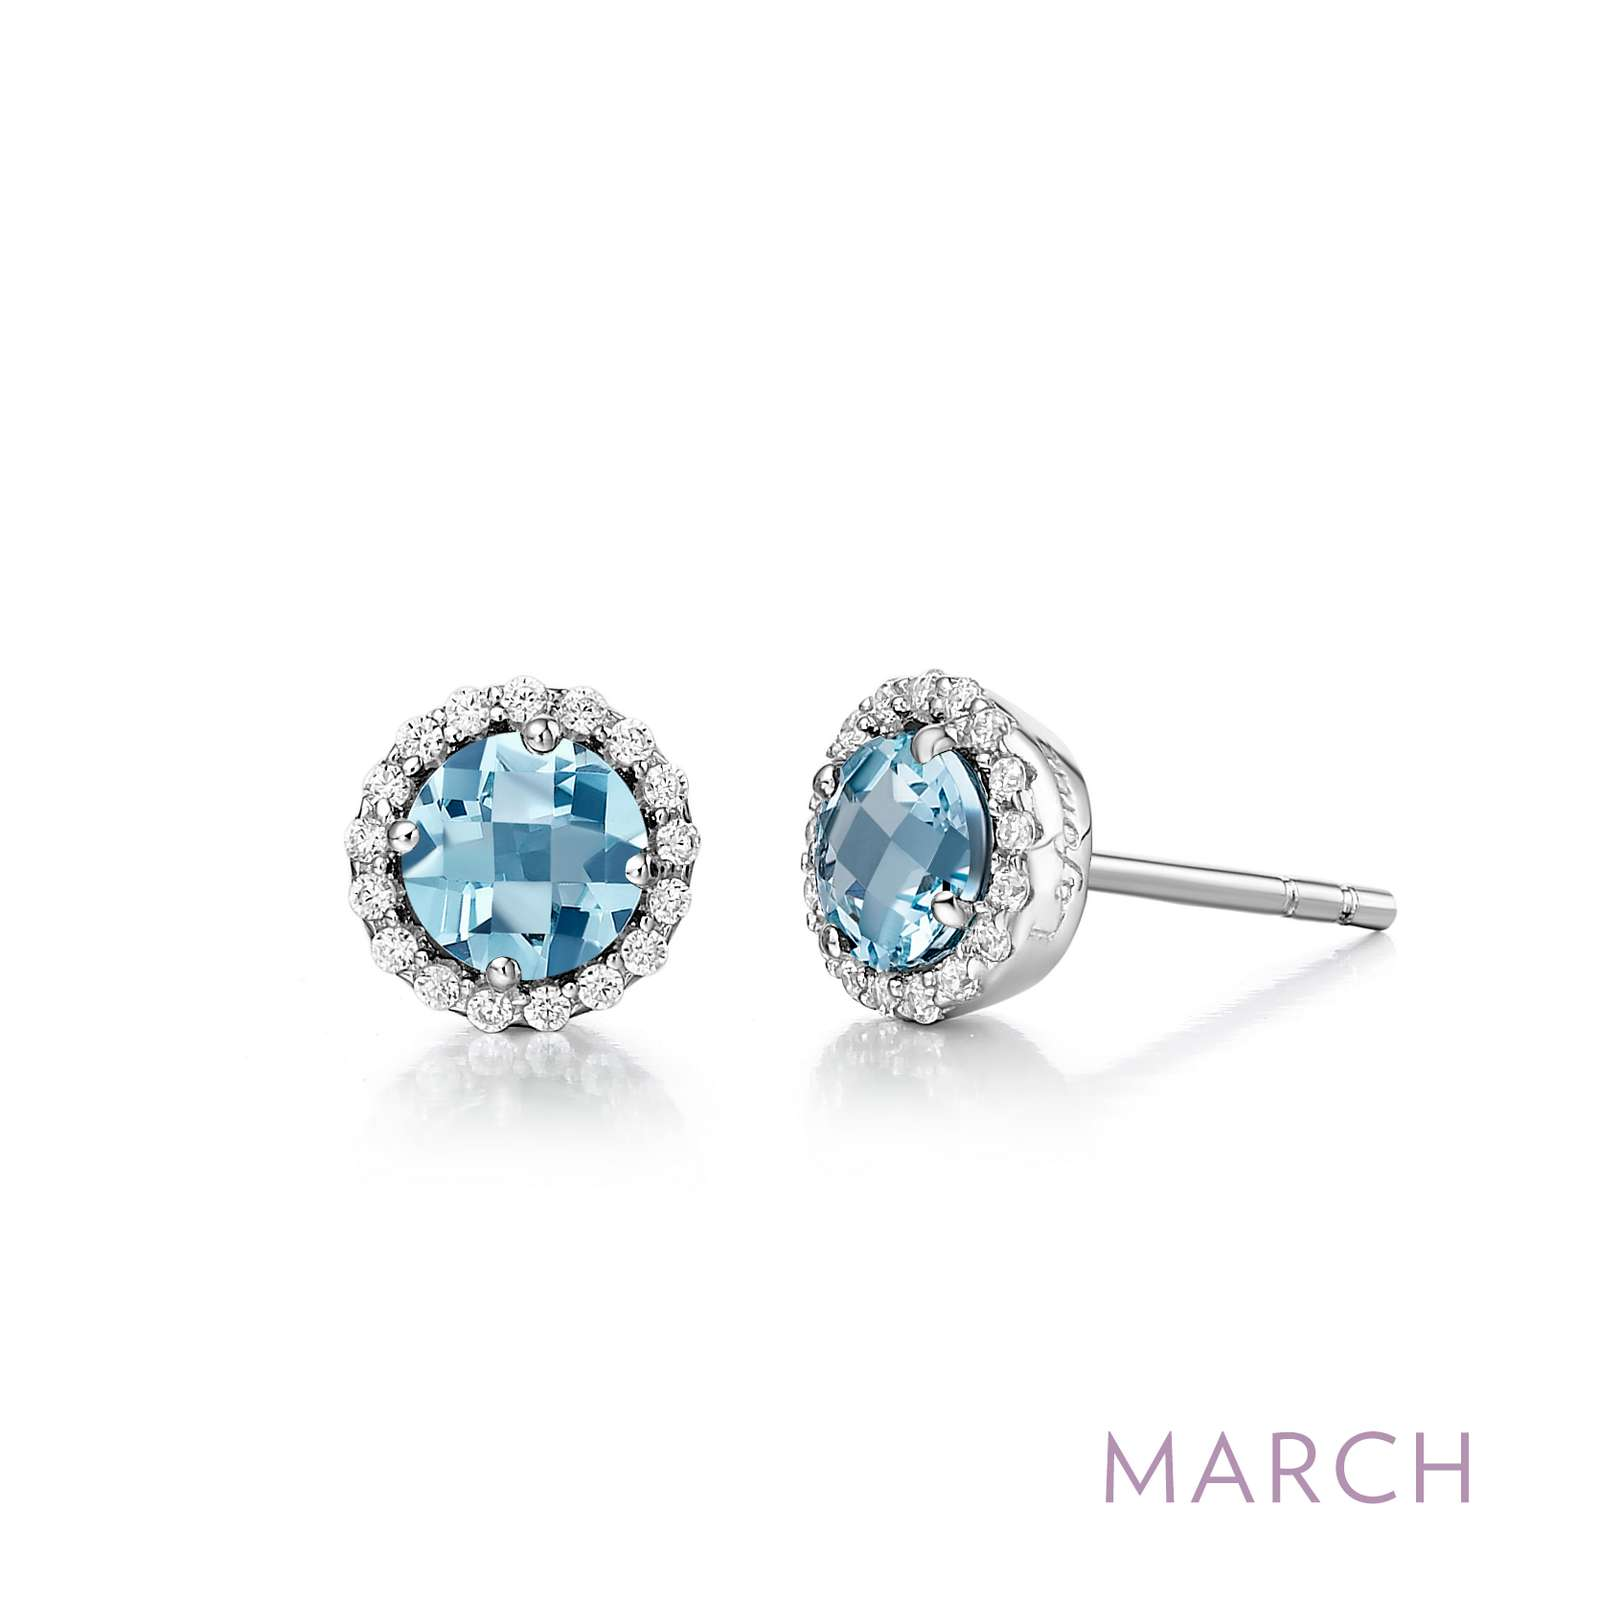 March - Aquamarine. Adorn yourself with Lafonn's birthstone jewelry. These halo stud earrings are set with simulated aquamarines surrounded by Lafonn's signature Lassaire simulated diamonds in sterling silver bonded with platinum.